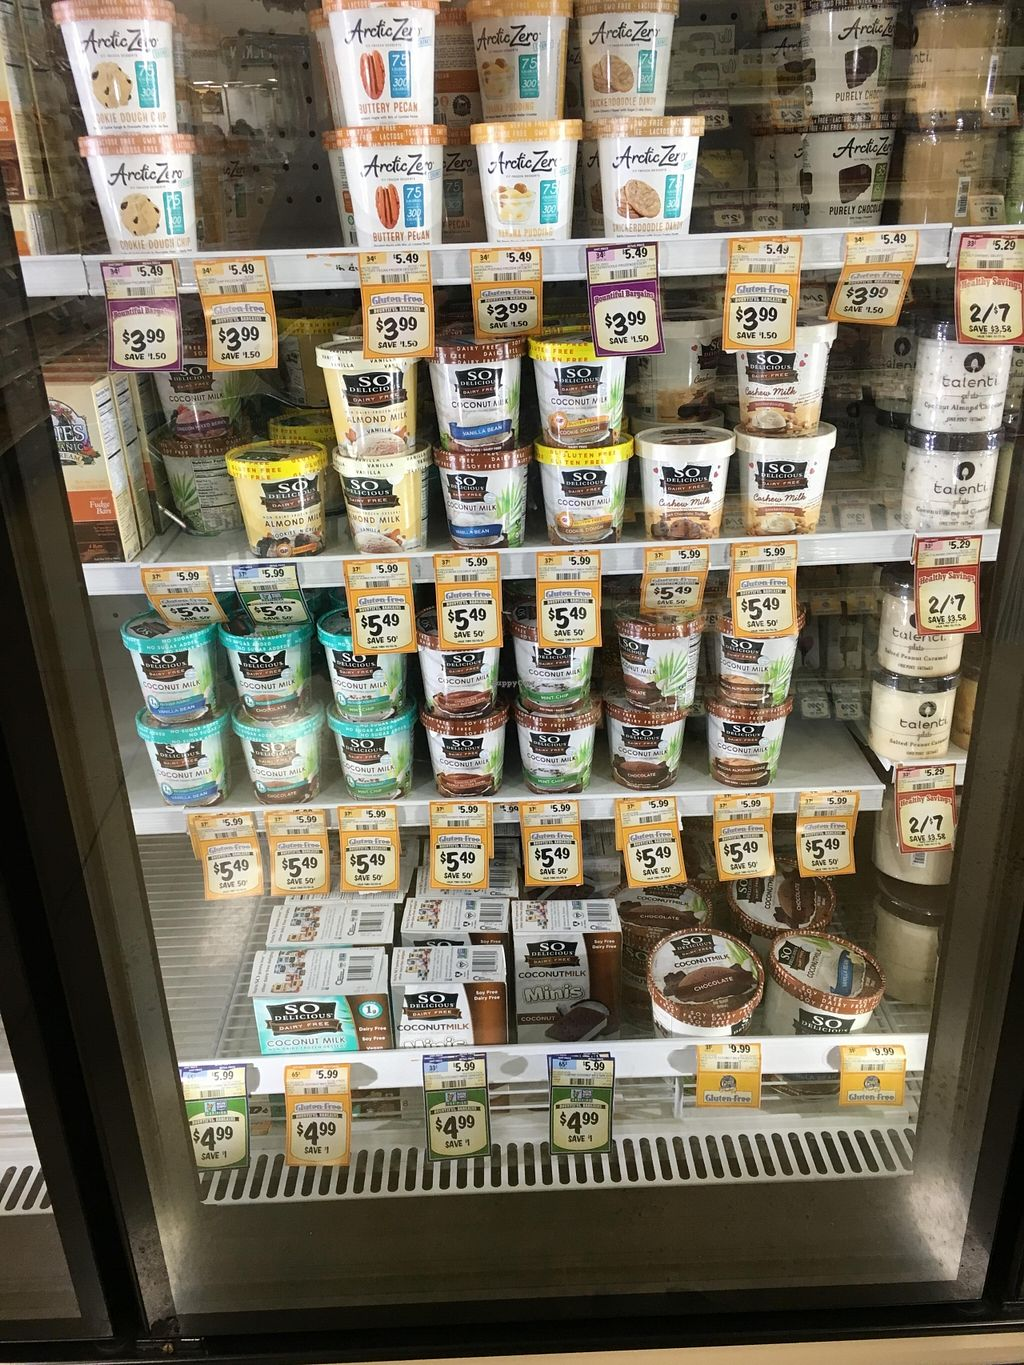 """Photo of Sprouts Farmers Market  by <a href=""""/members/profile/cookiem"""">cookiem</a> <br/>Non-dairy yogurt galore <br/> February 20, 2016  - <a href='/contact/abuse/image/68375/137021'>Report</a>"""